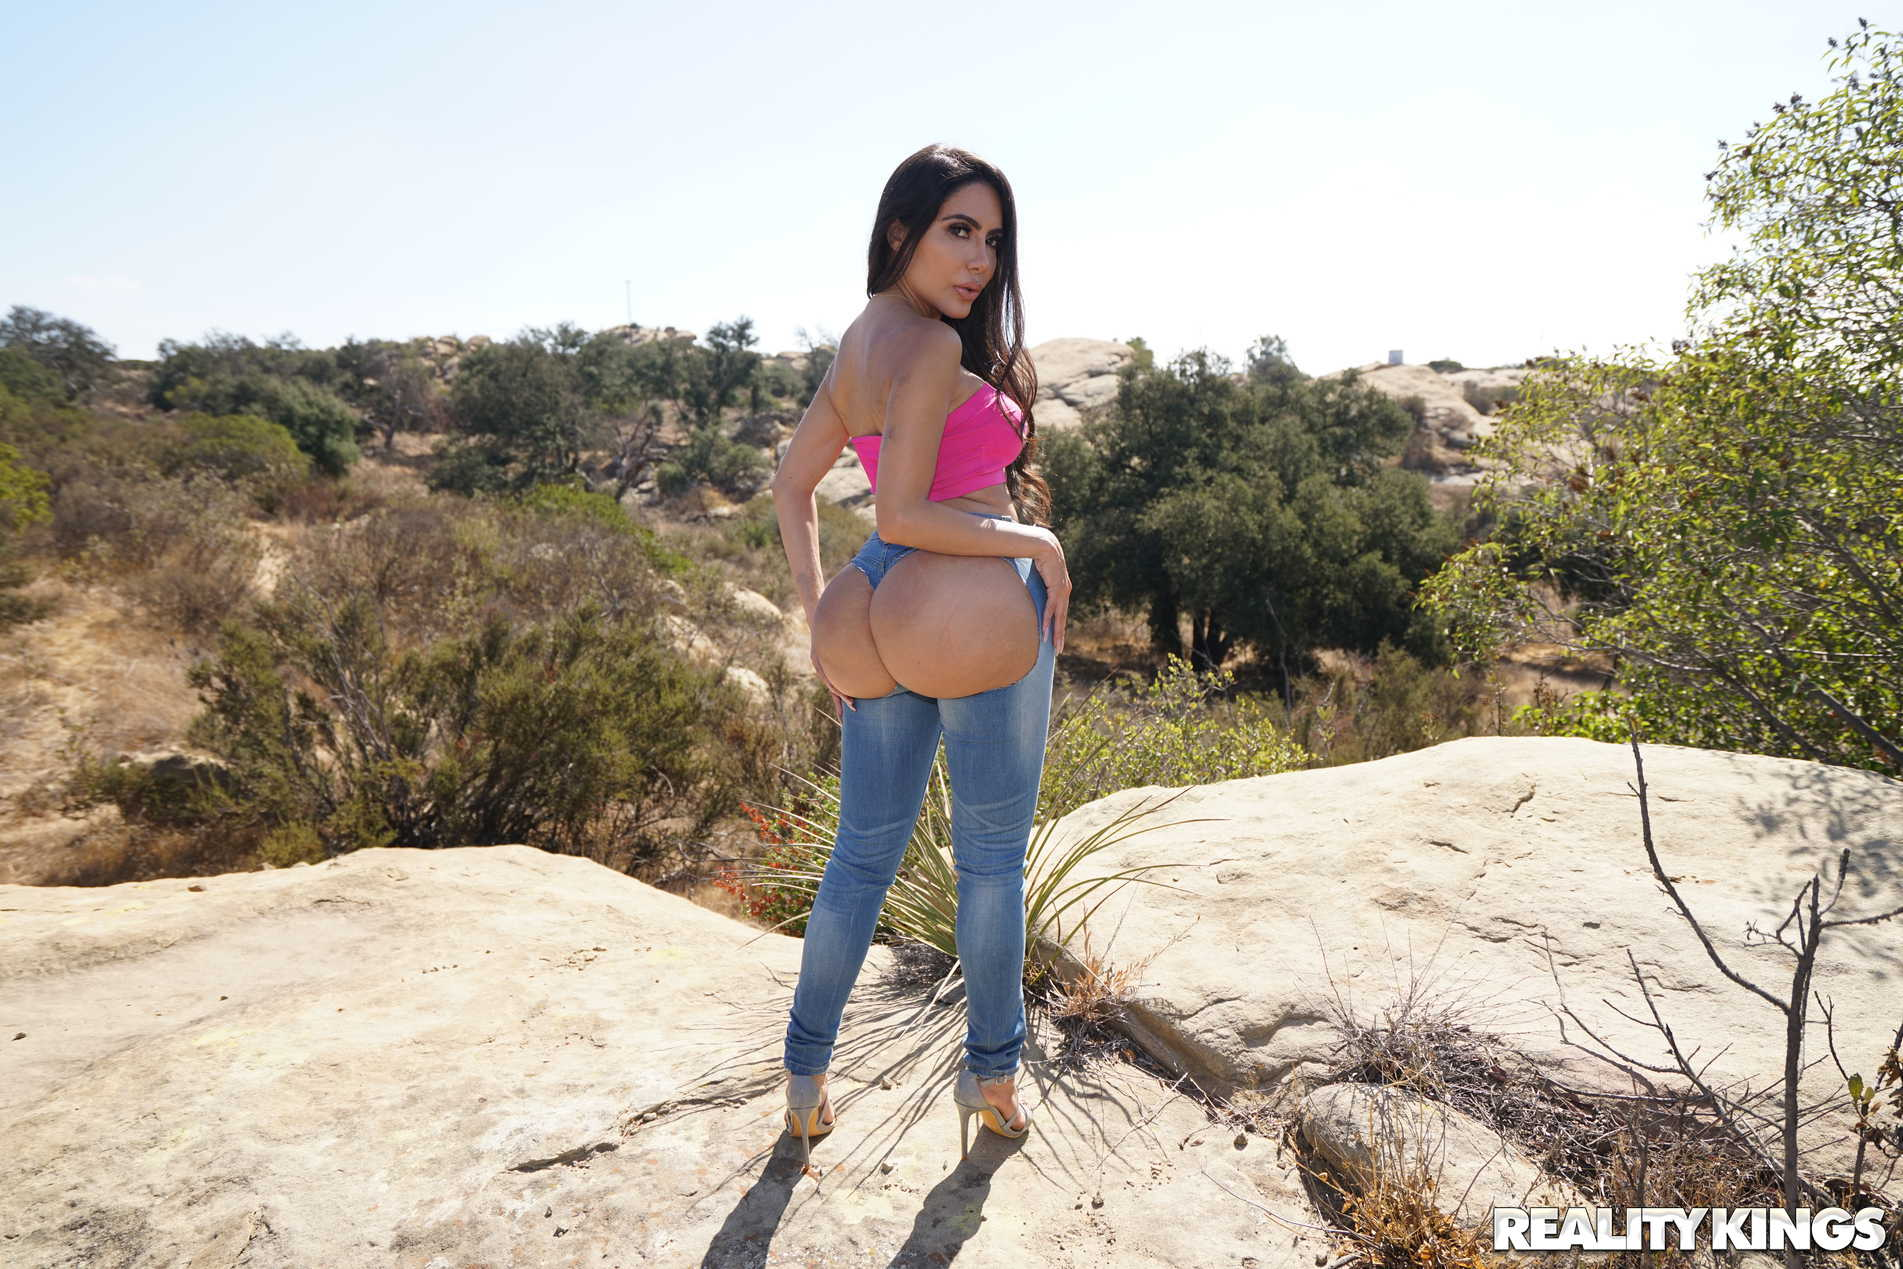 Reality Kings 'Ass Out' starring Lela Star (Photo 1)